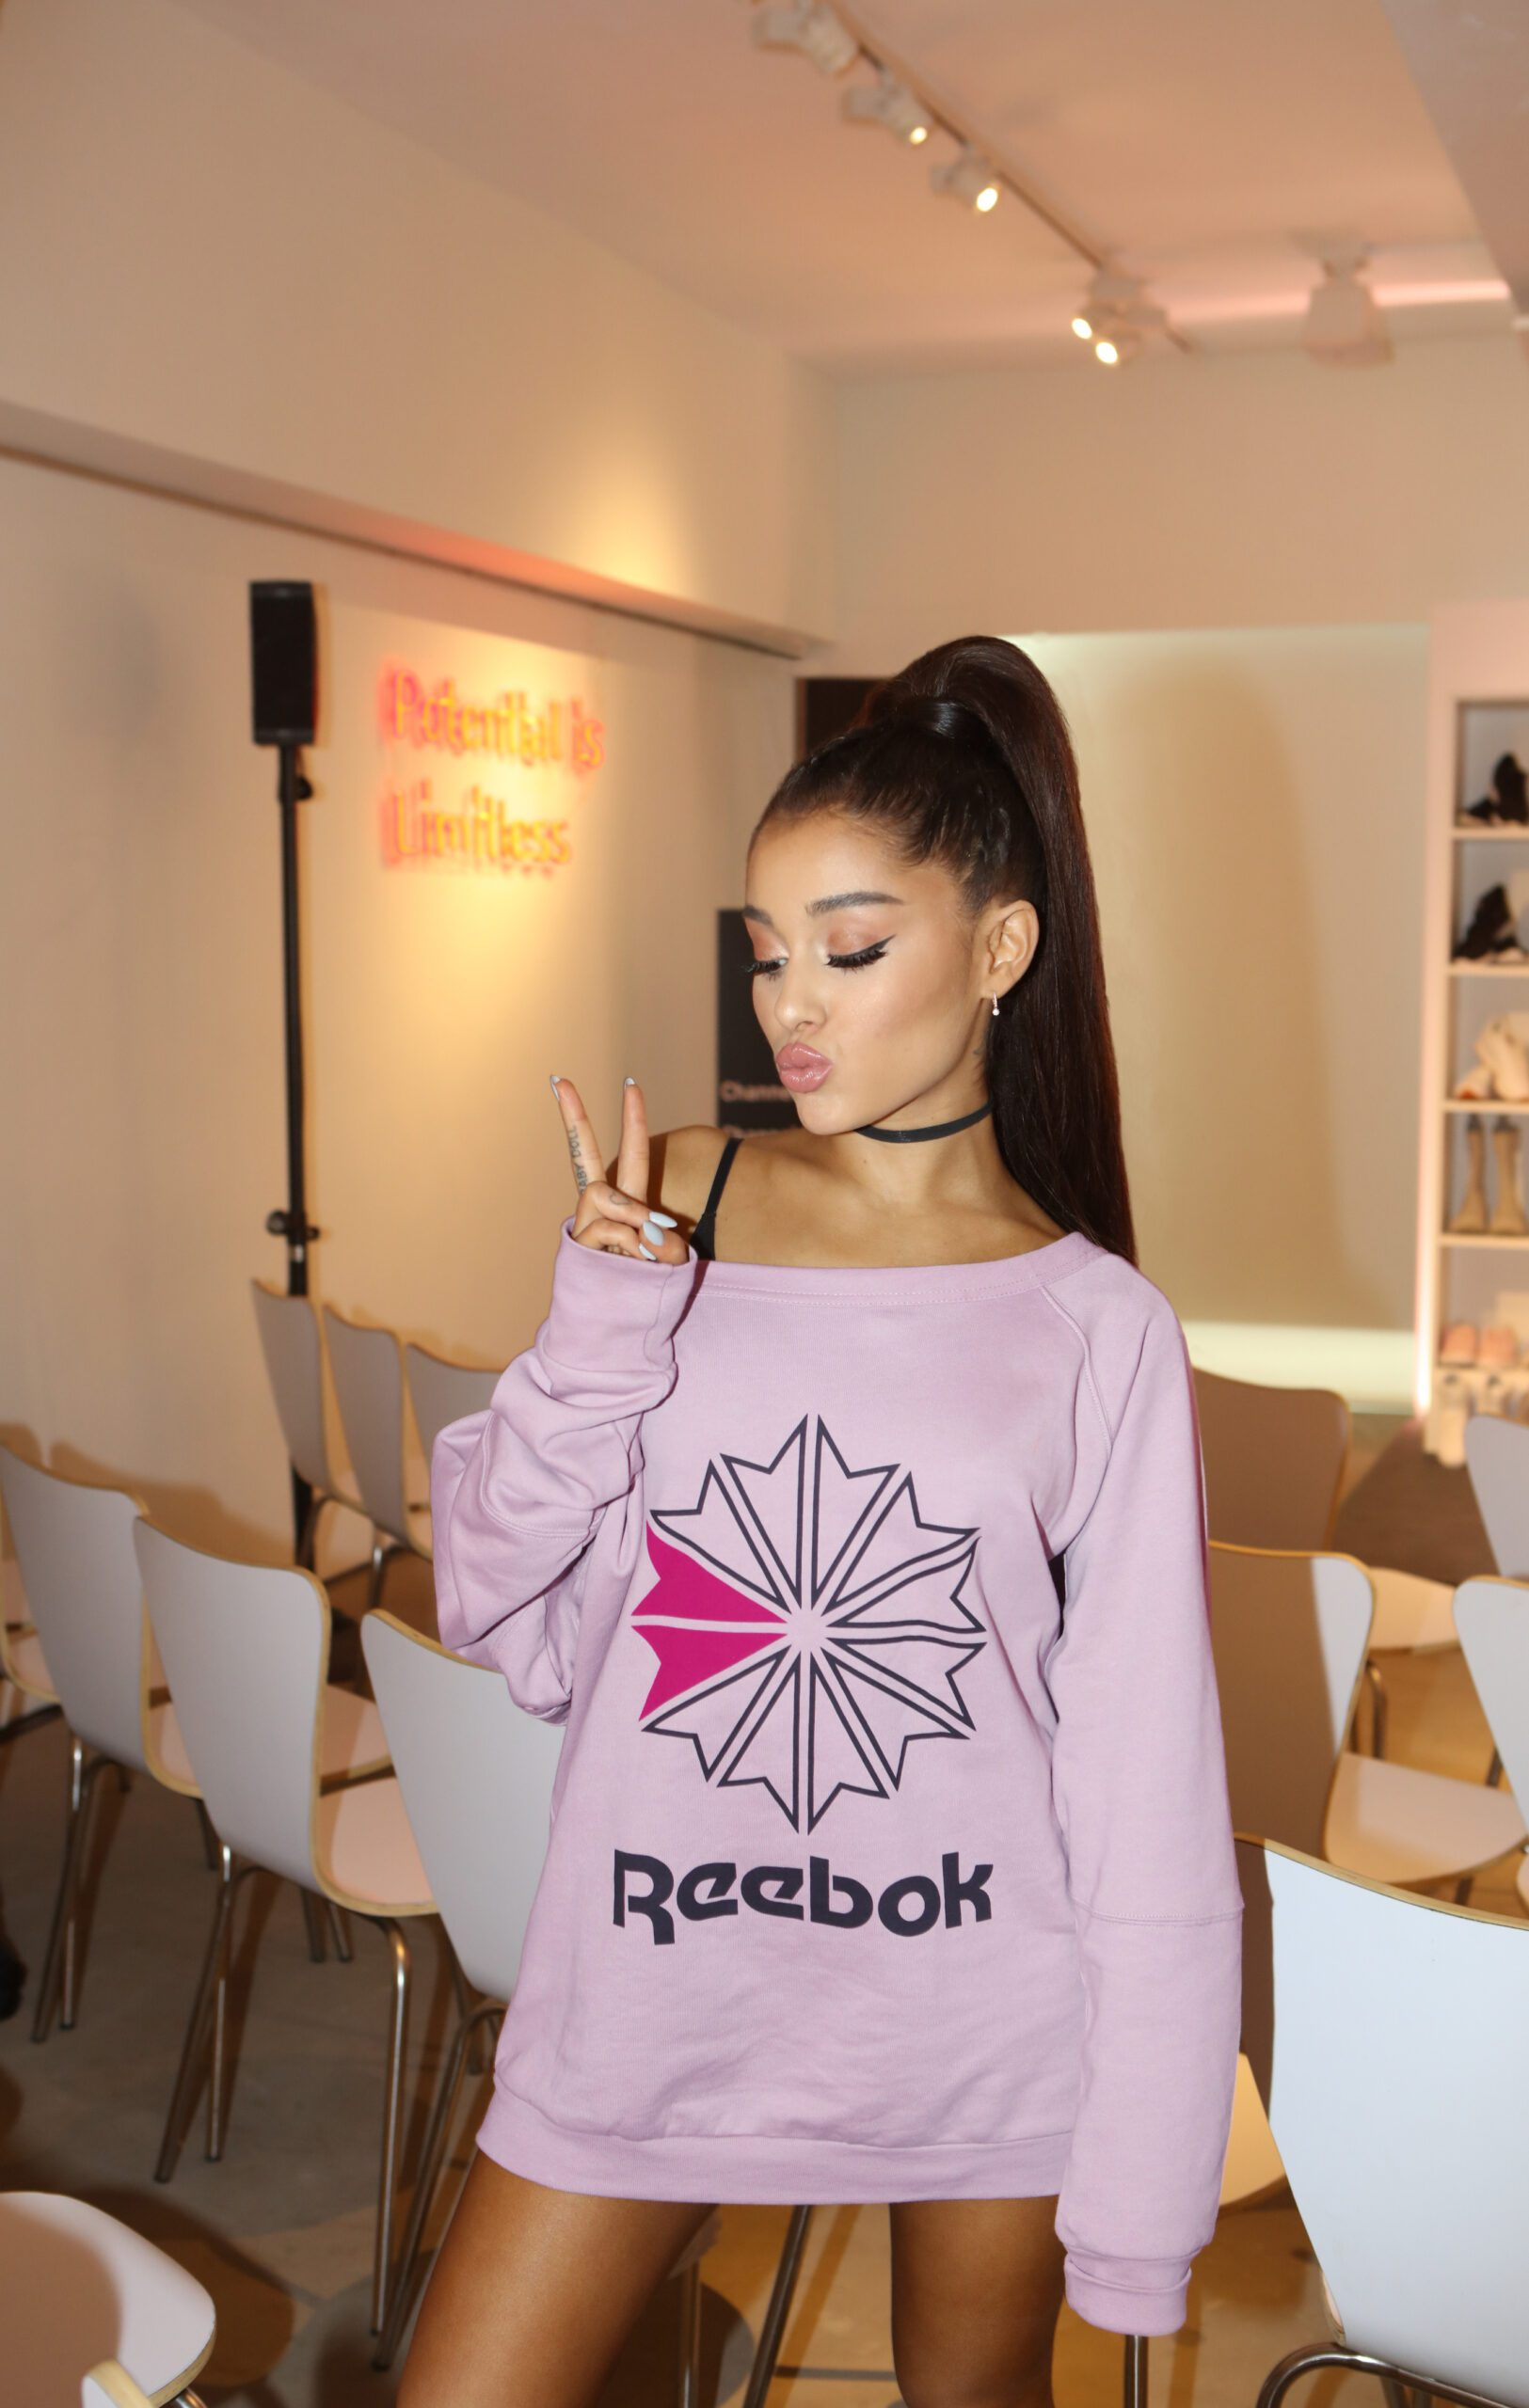 Reebok Reveals An Inspiring Day In The Life Of Ariana